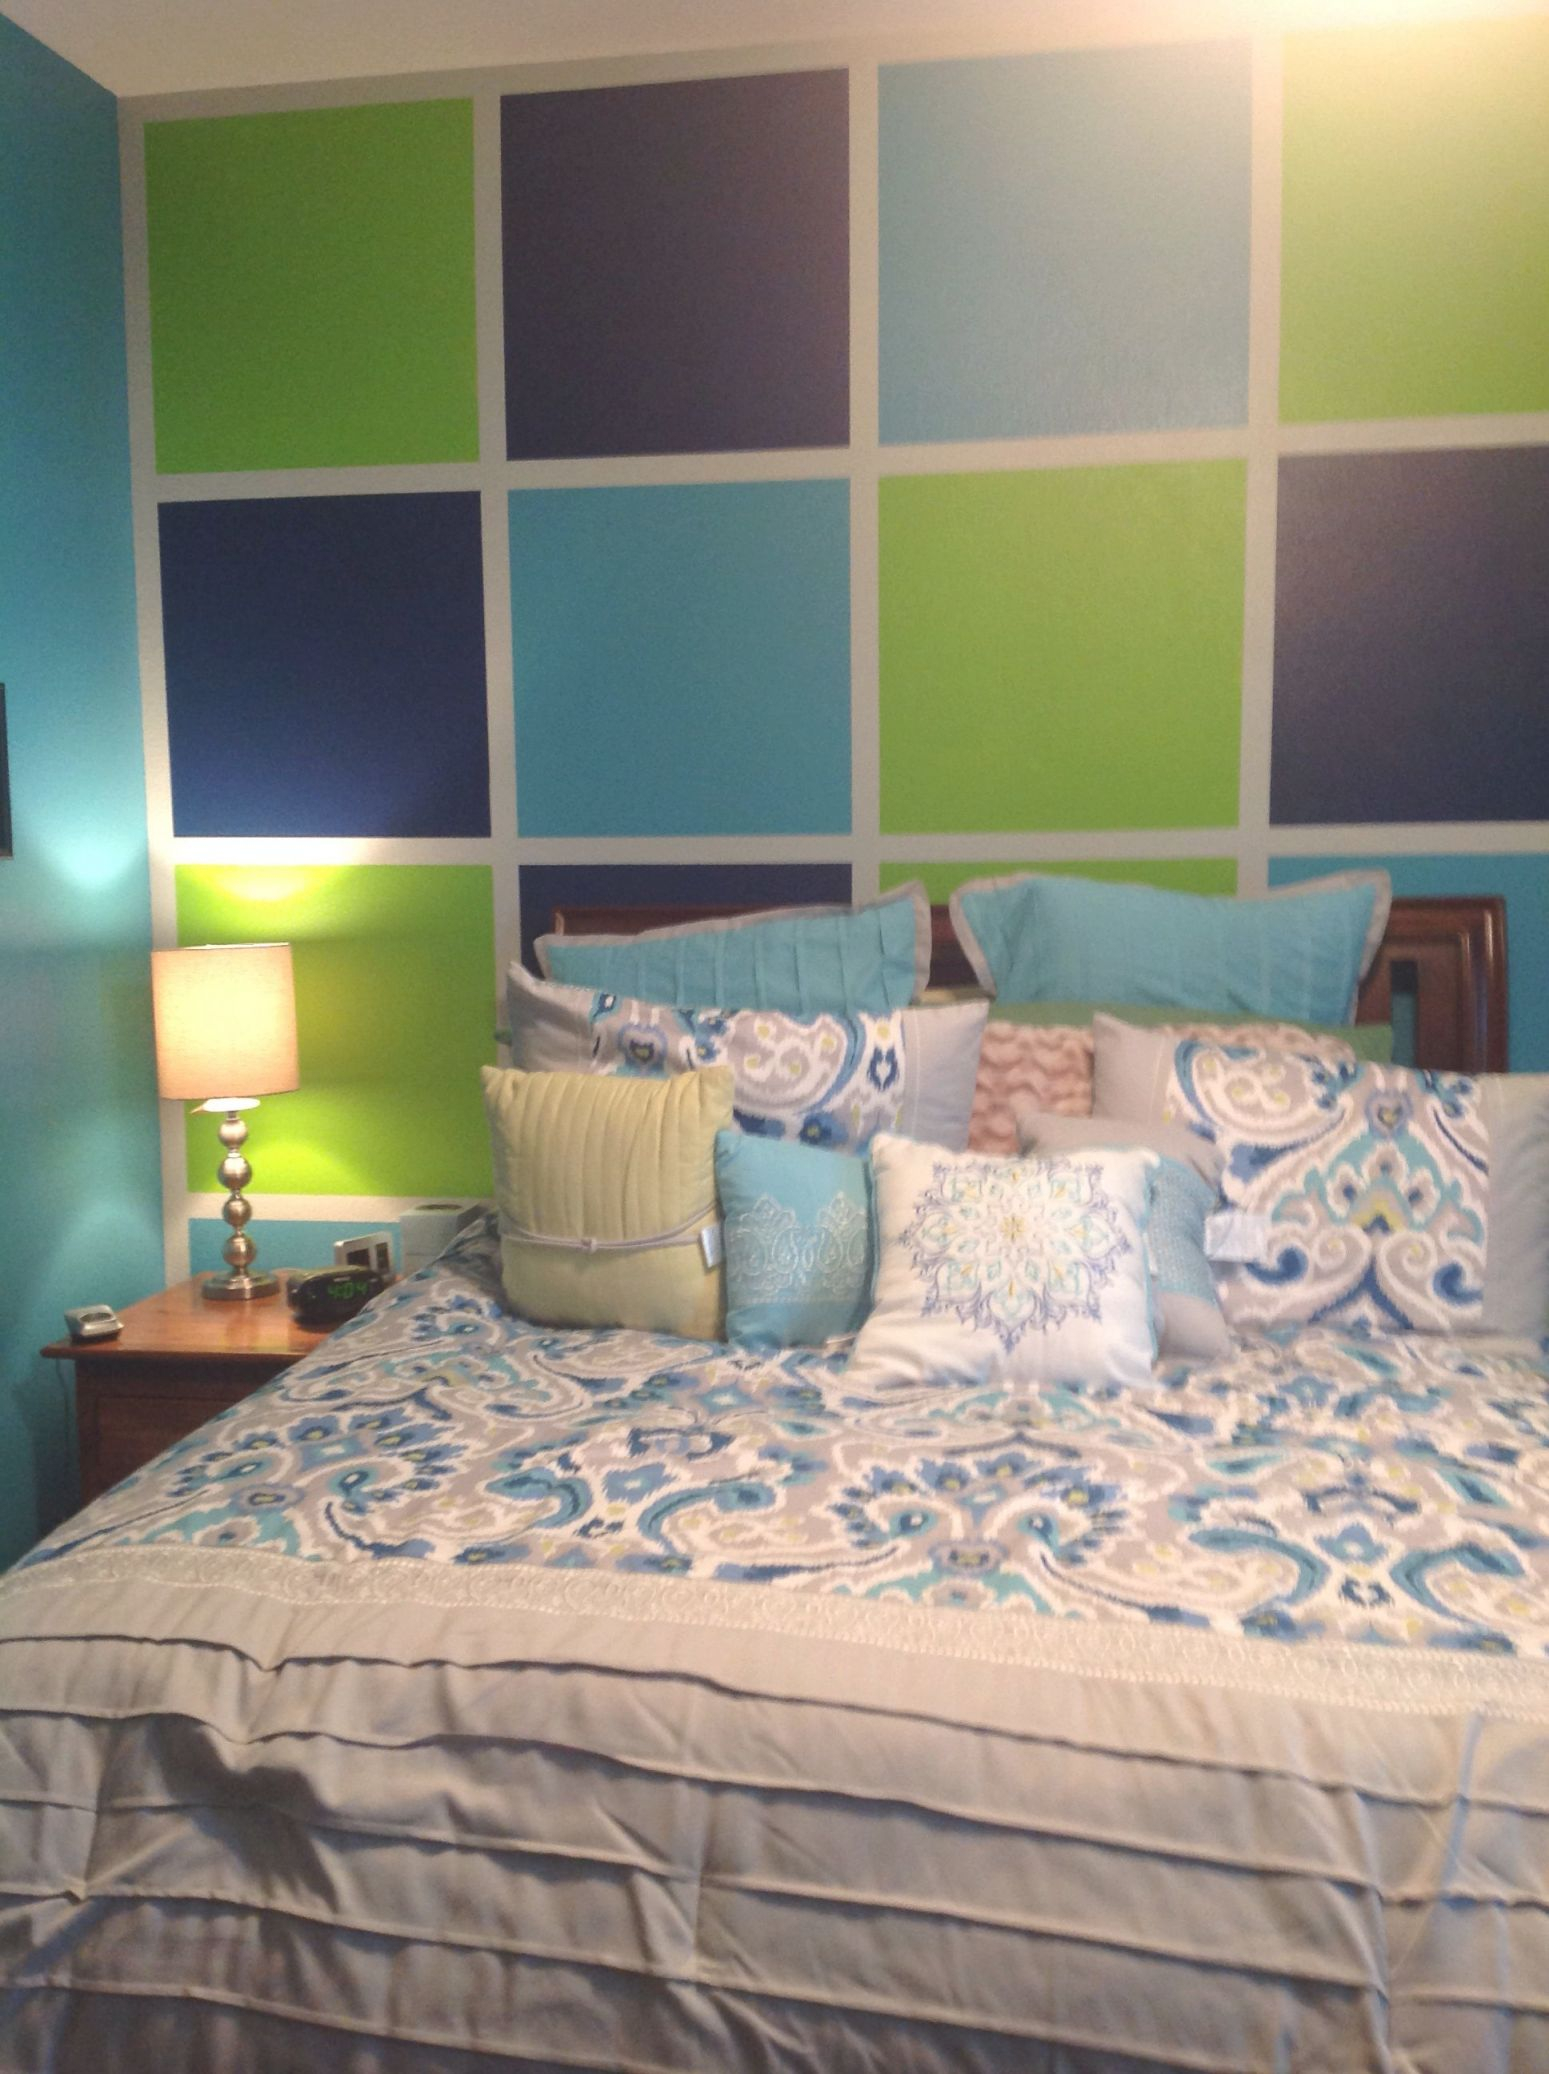 Love This New Teenage Girls Room In Aqua, Lime Green, And pertaining to Inspirational Blue And Green Bedroom Decorating Ideas